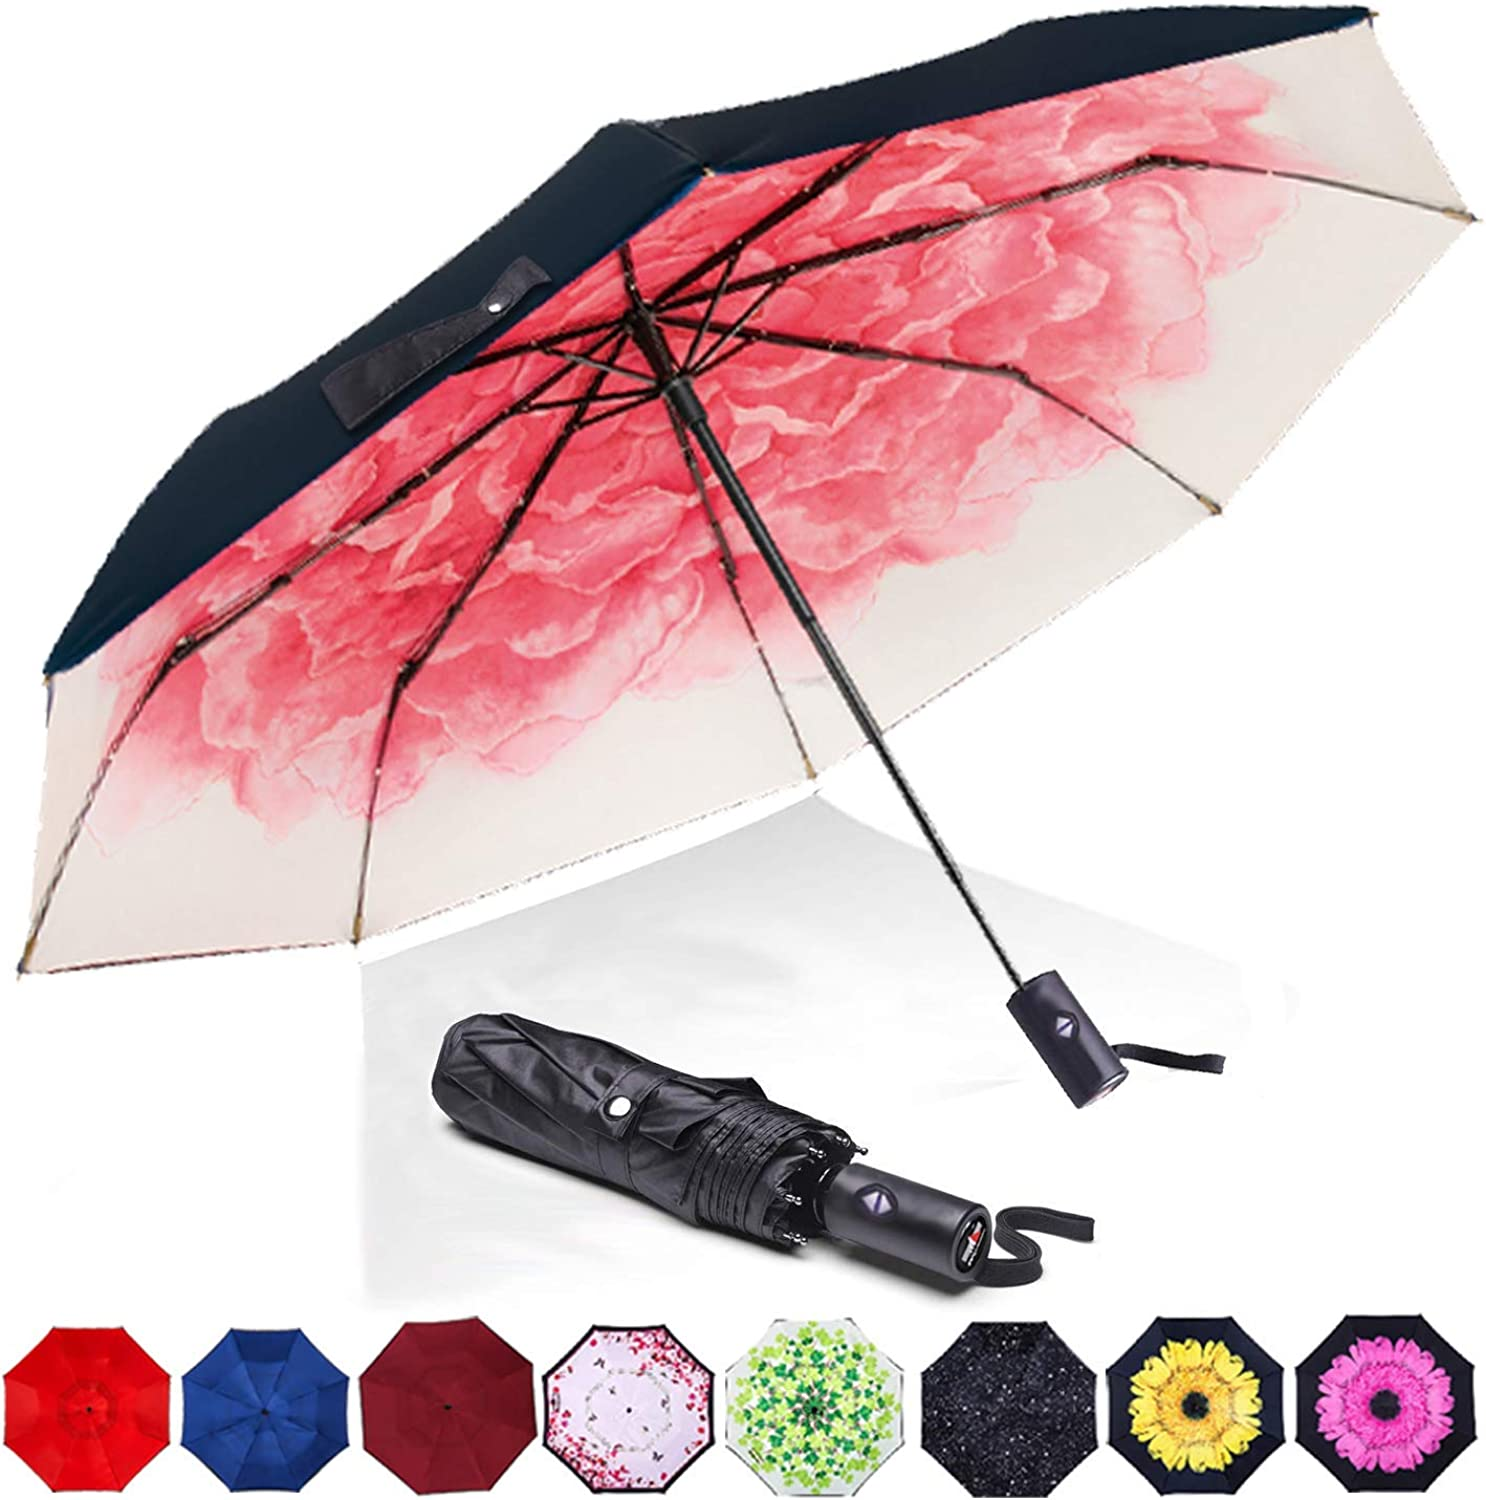 TLMY Sunscreen Black Umbrella Folding Umbrella Women UV Sun Umbrellas Umbrella Color : Pink